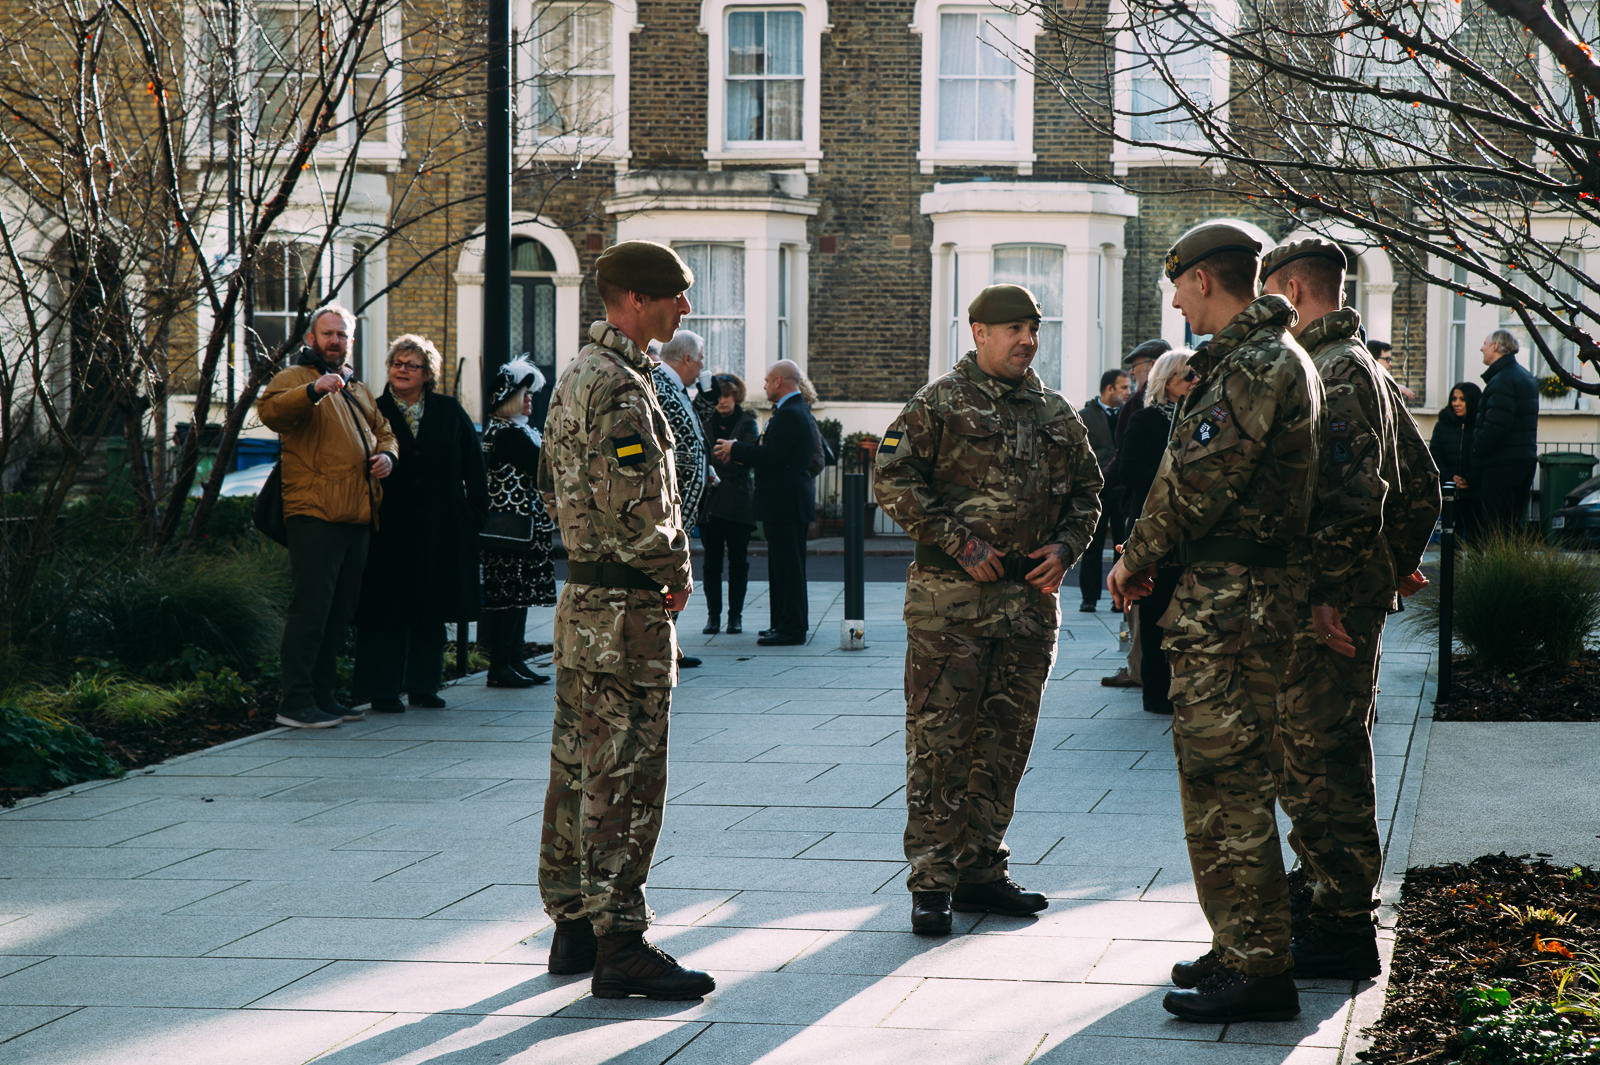 uk soldiers on the street